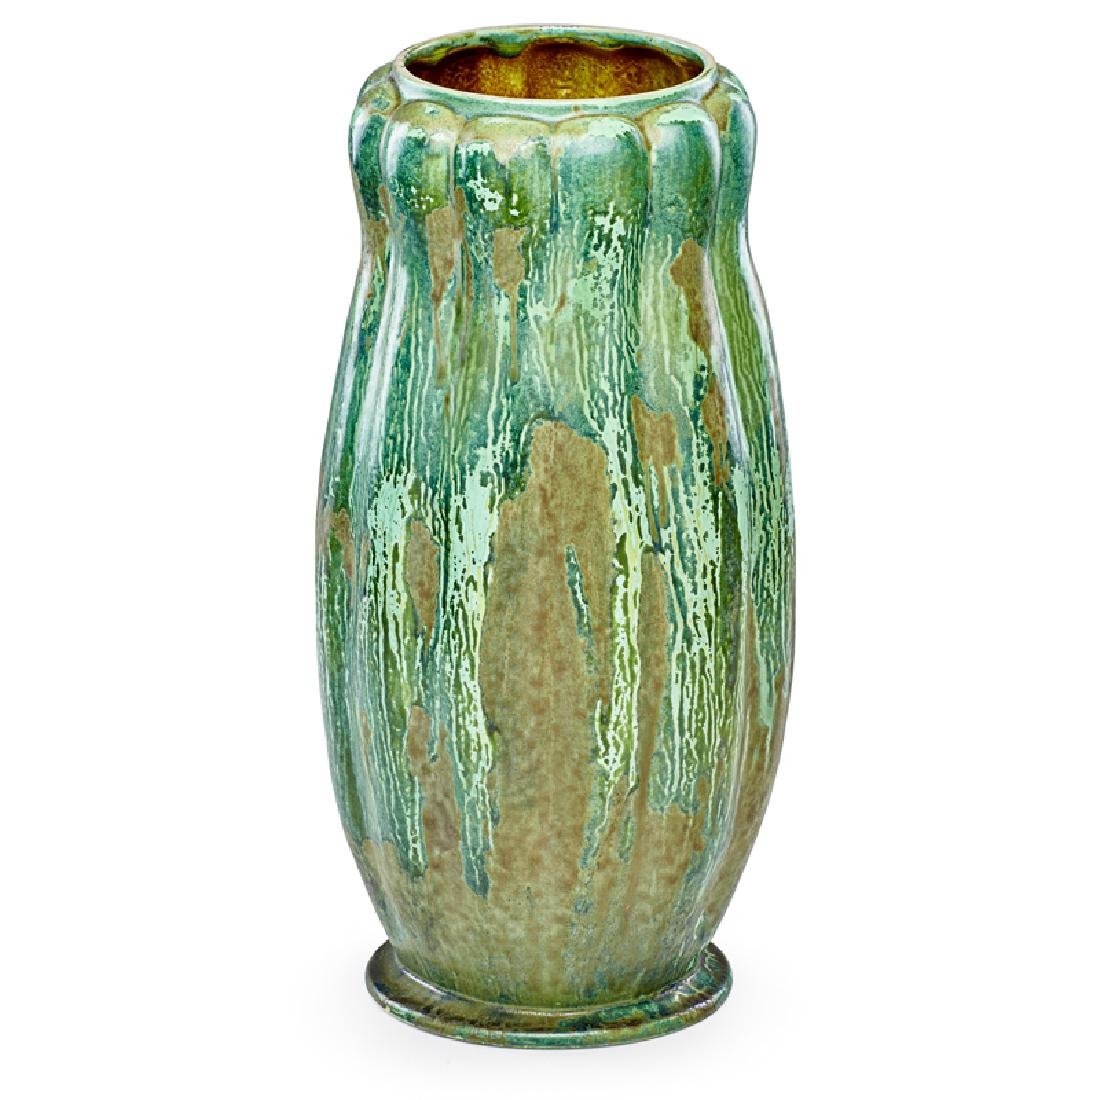 TIFFANY STUDIOS Massive gourd-shaped vase